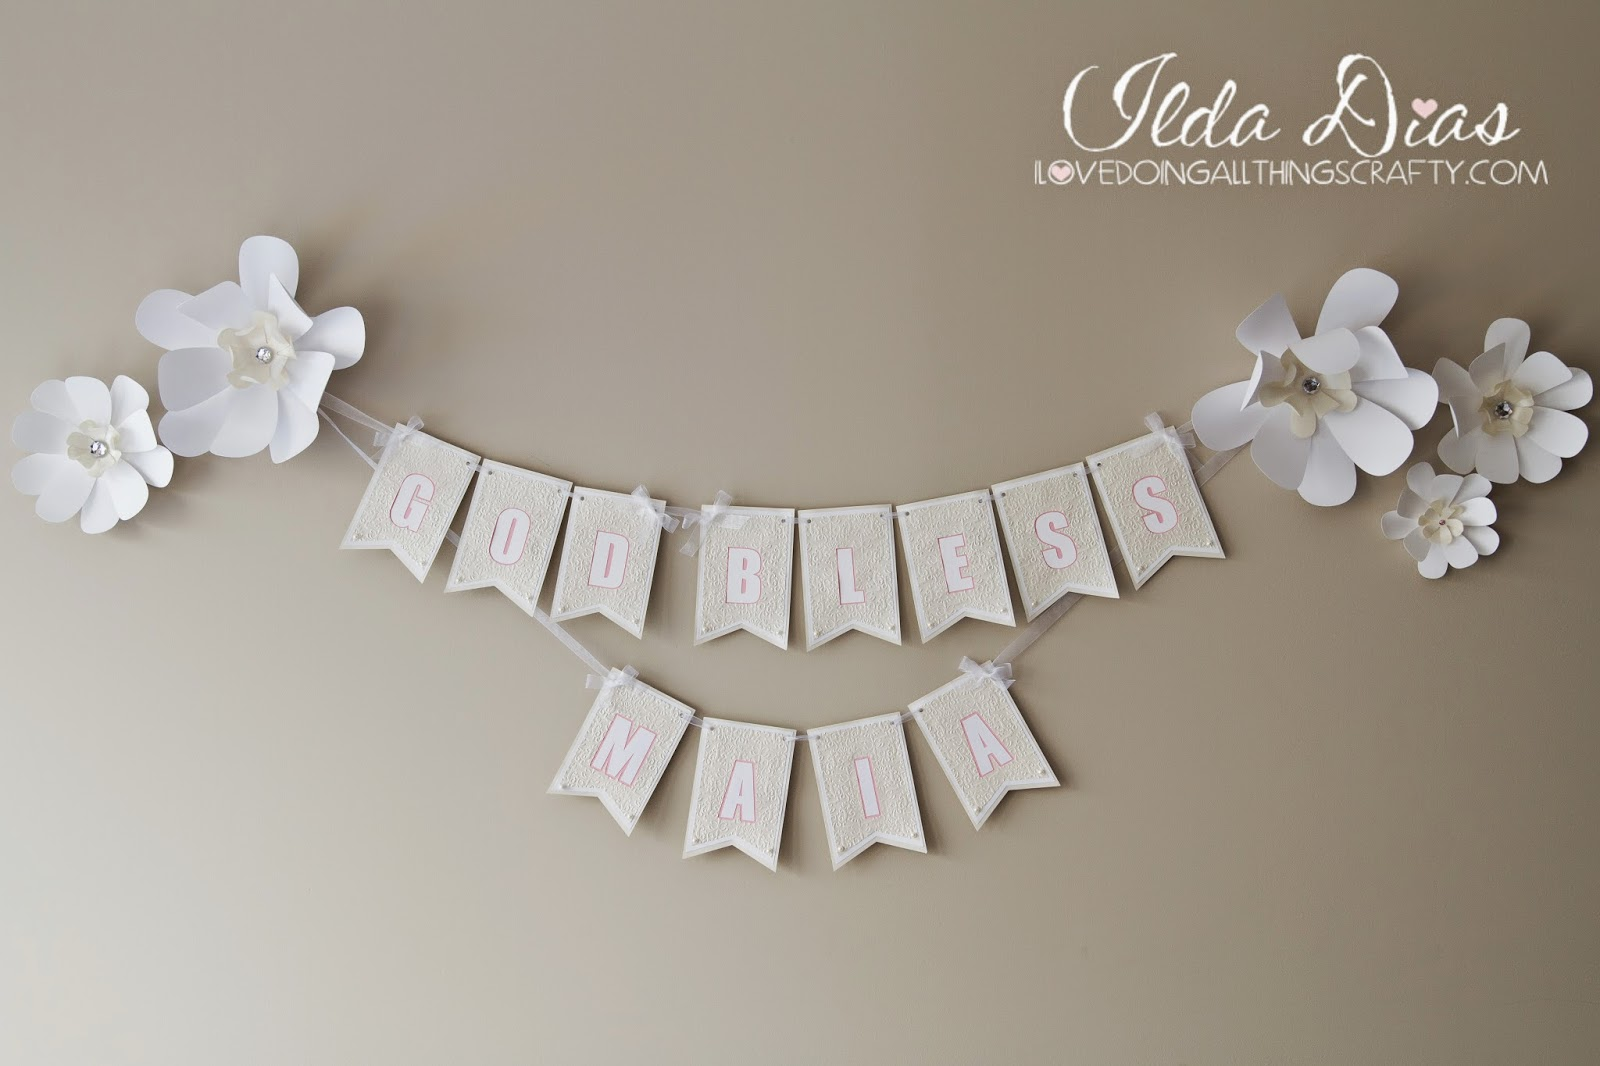 I love doing all things crafty first communion day diy decor here is a closer look at the details solutioingenieria Images